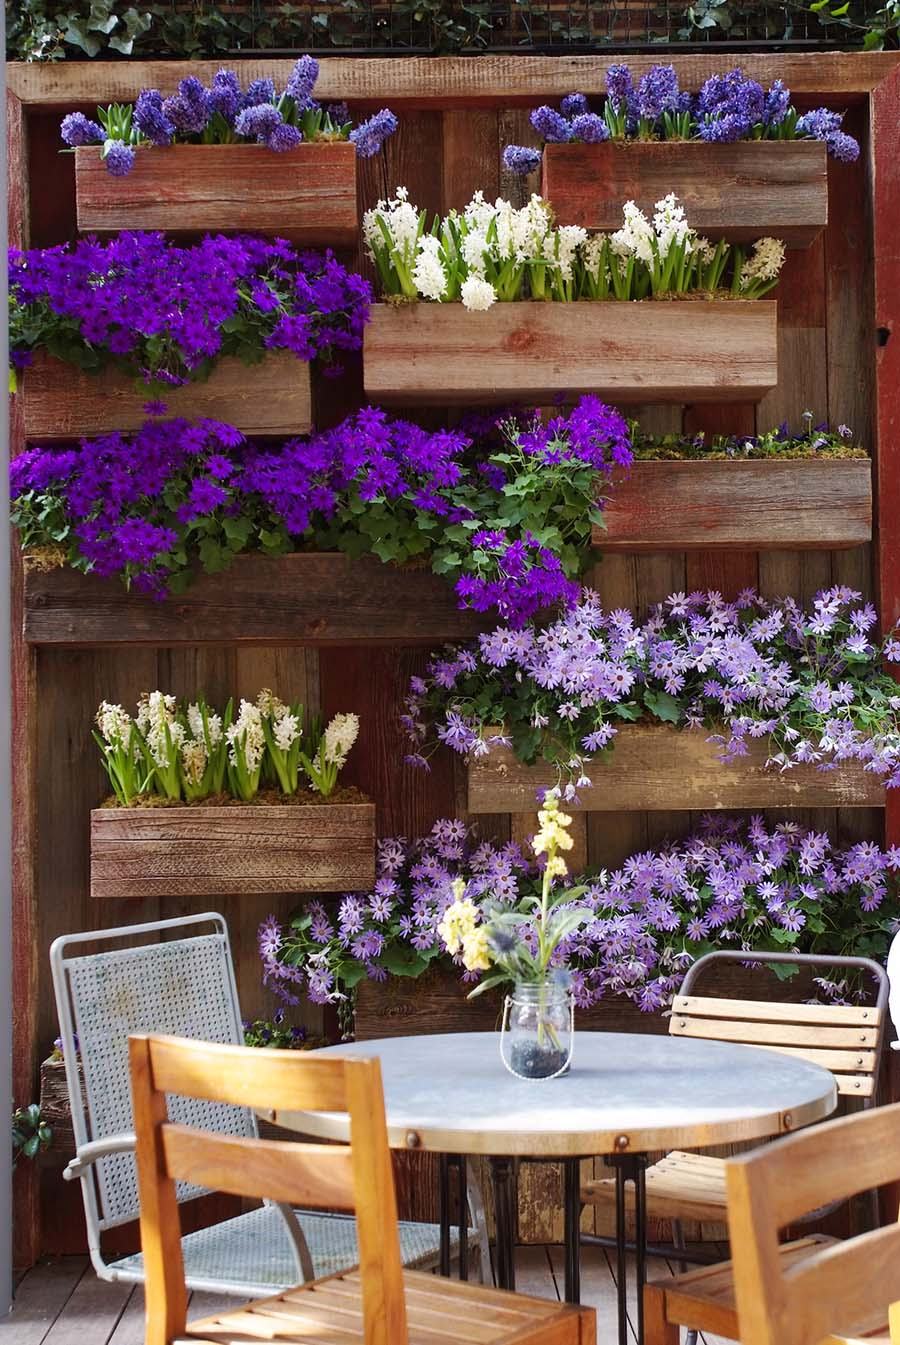 Frame a Patio Space with a Beautiful Hanging Garden